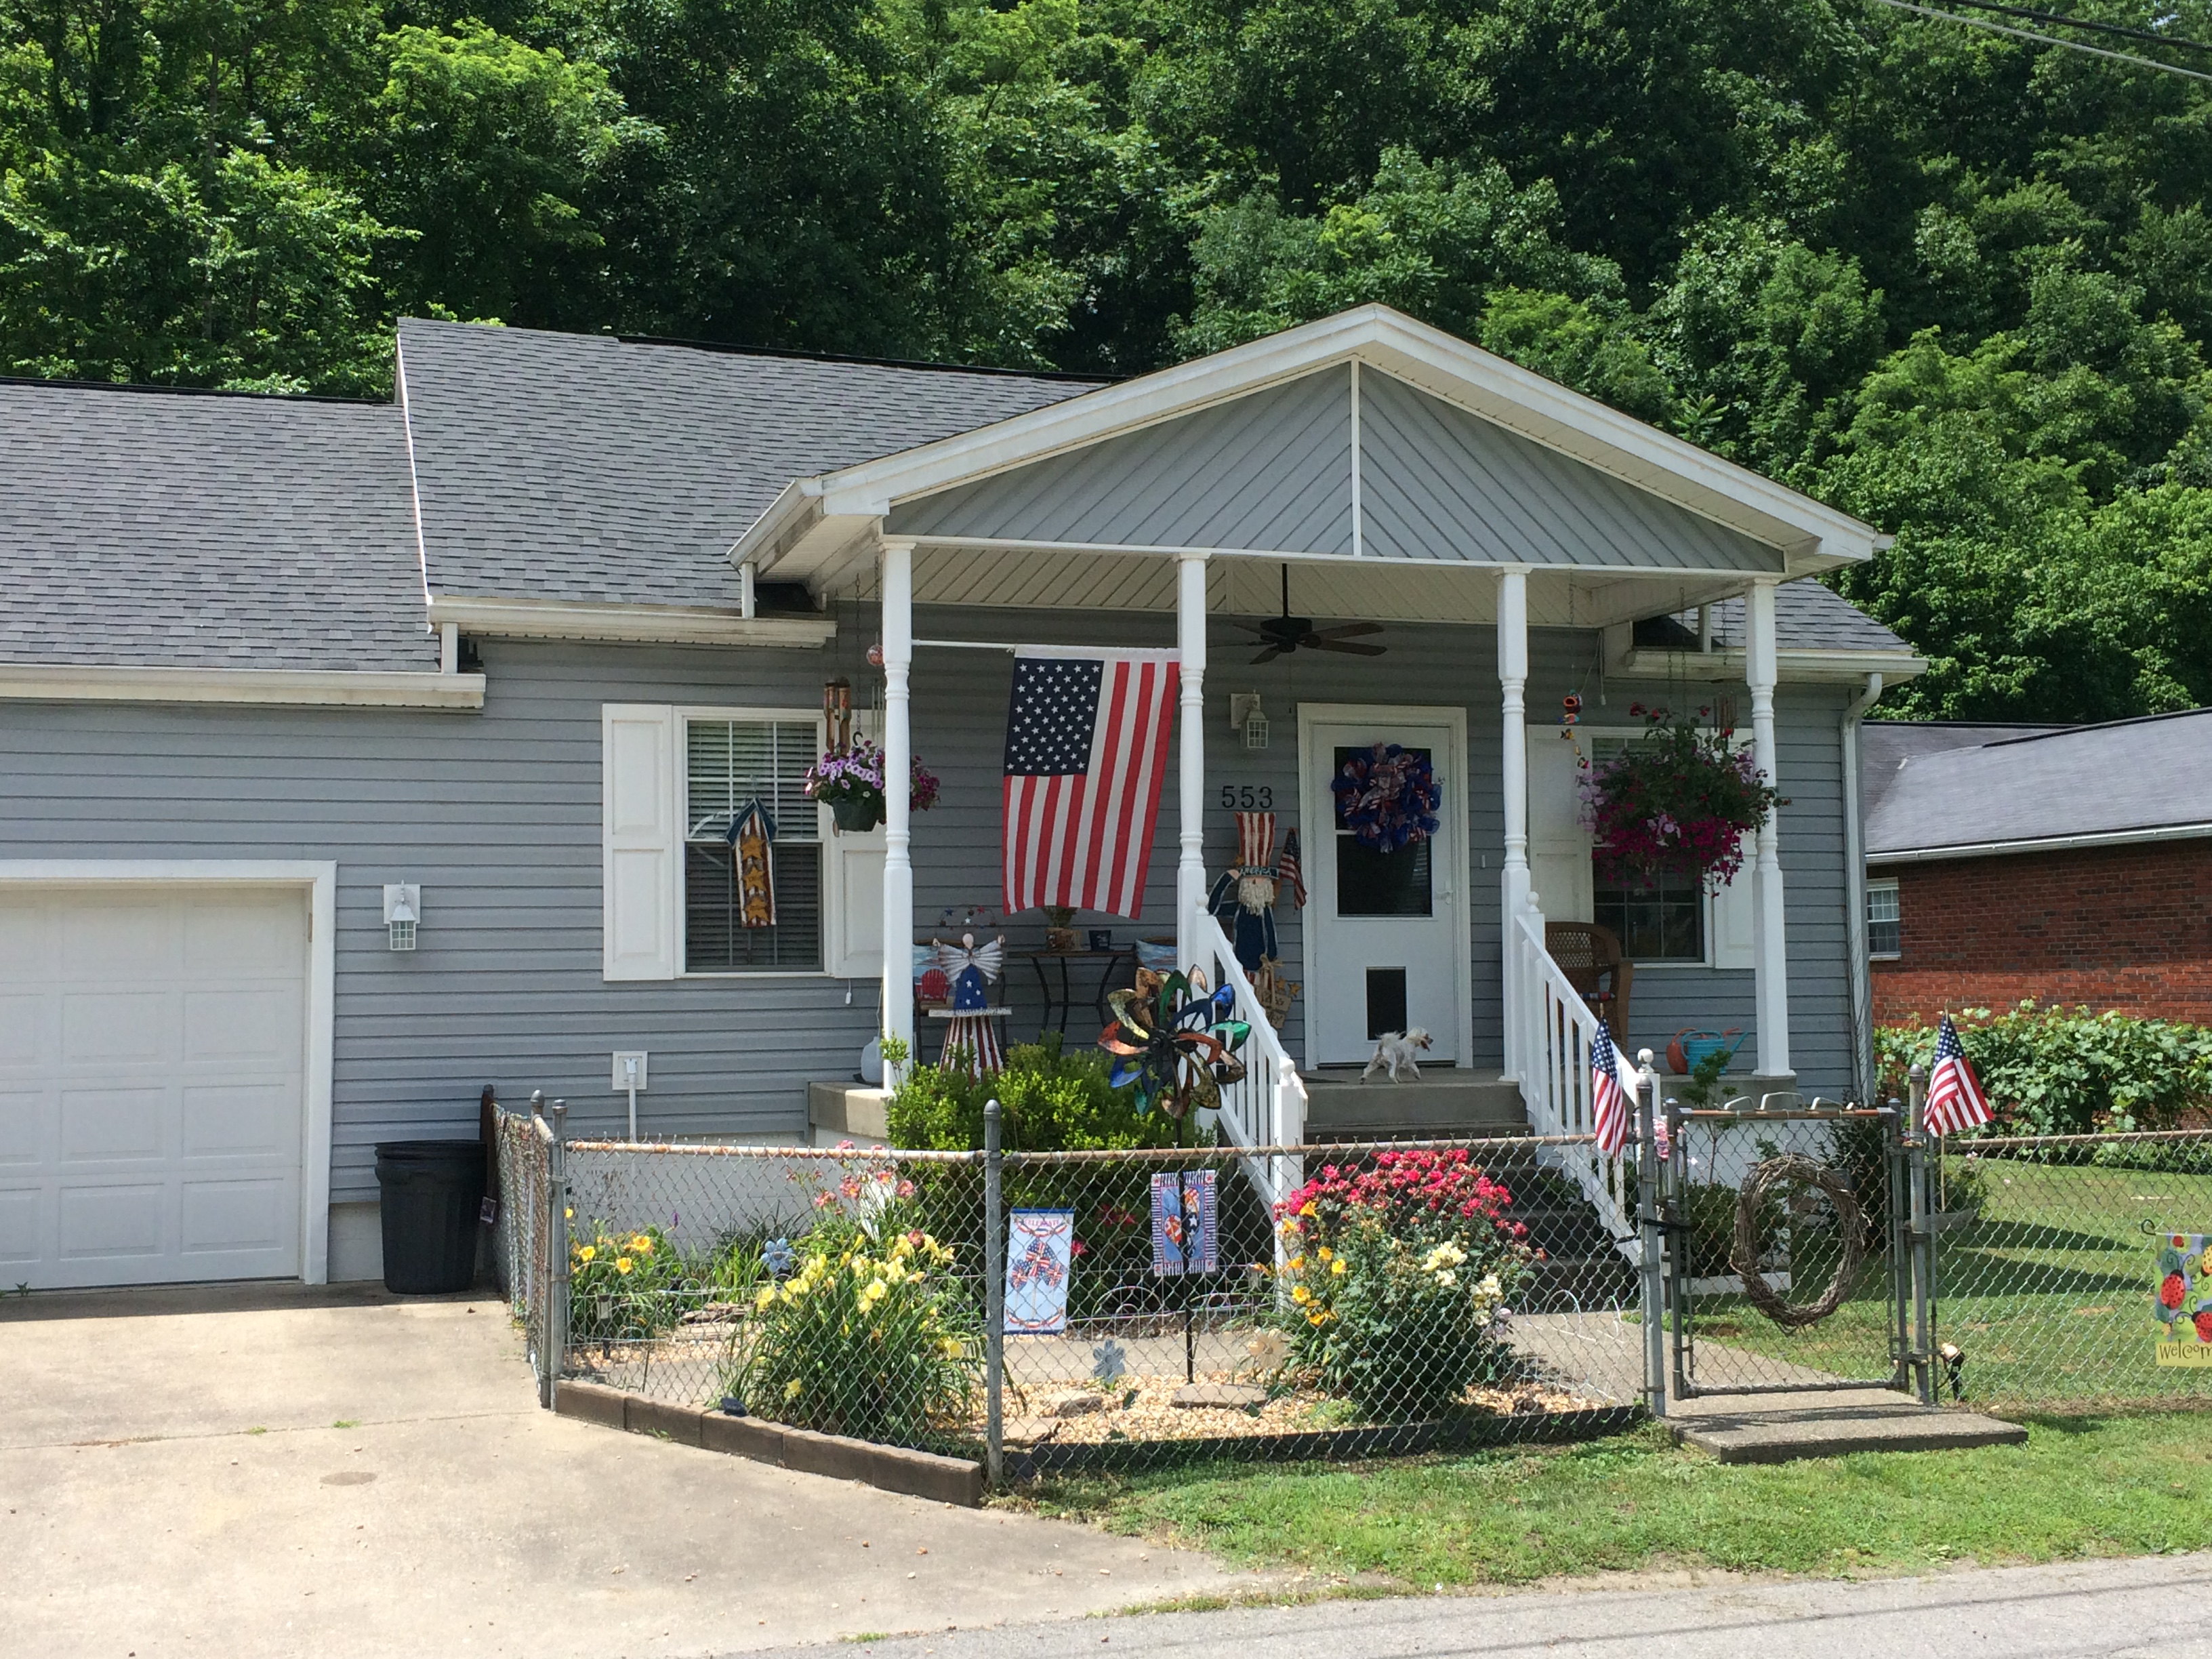 553 Yuma Road, Logan, West Virginia 25601